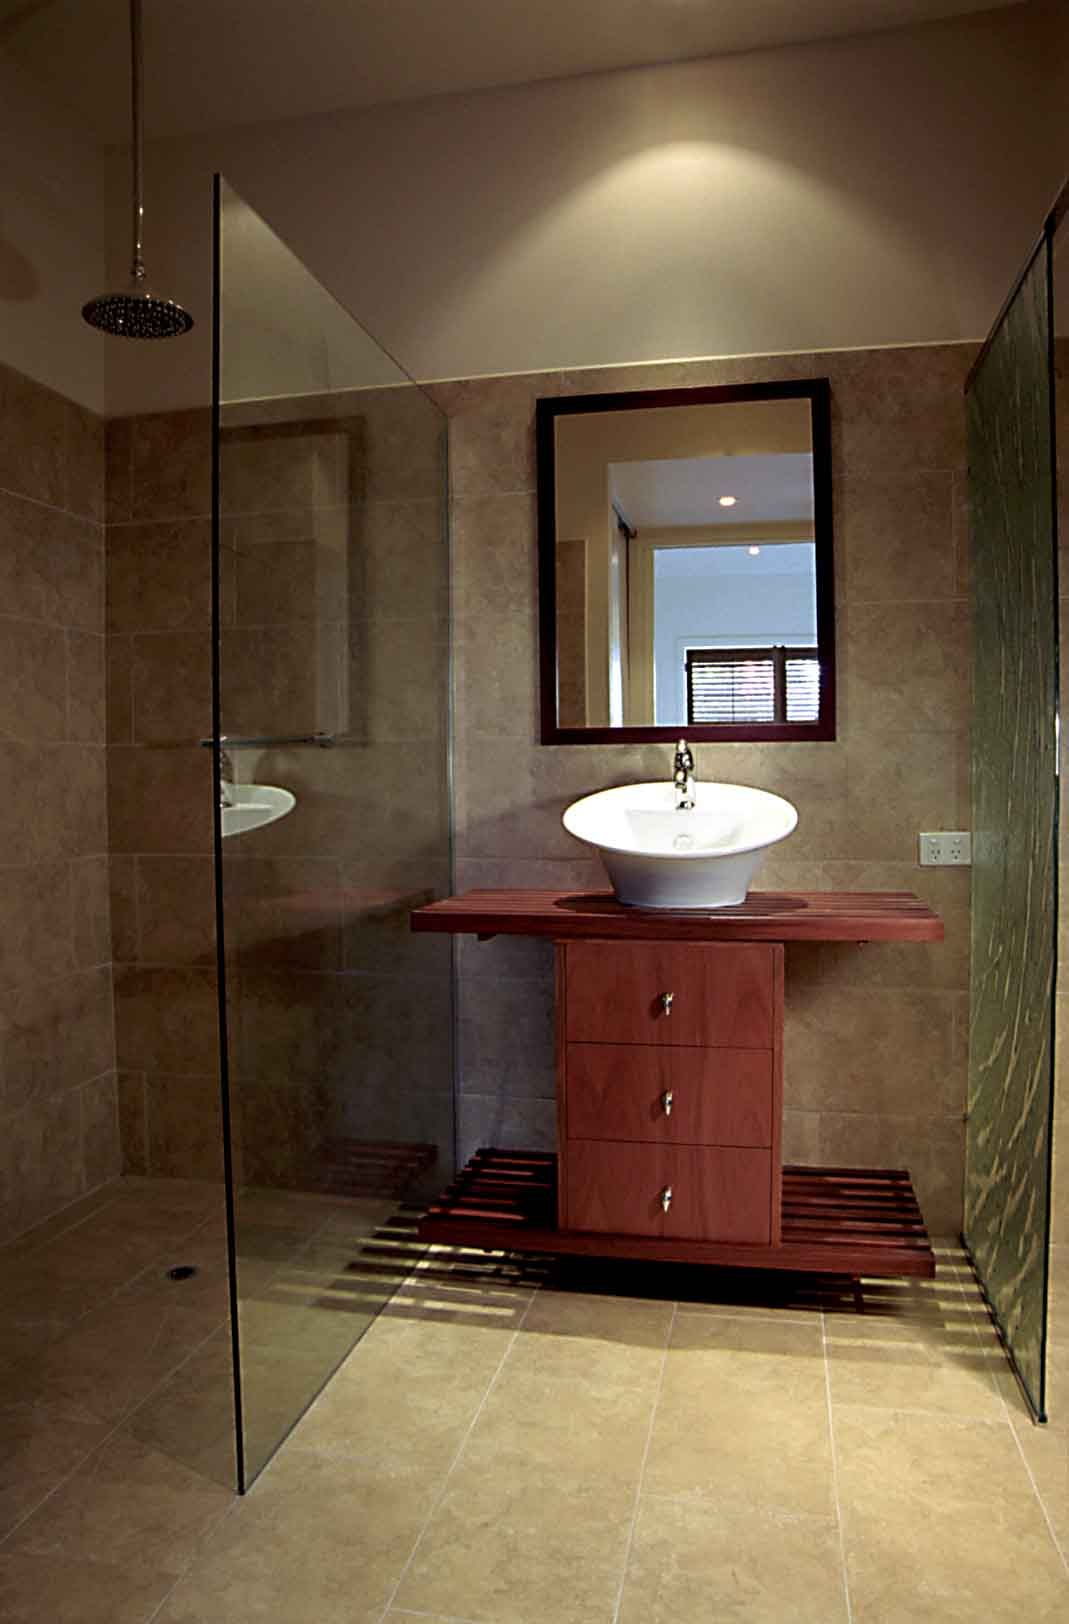 Tremendous Wet Room Design For Small Bathrooms Small Ensuite Bathroom Largest Home Design Picture Inspirations Pitcheantrous